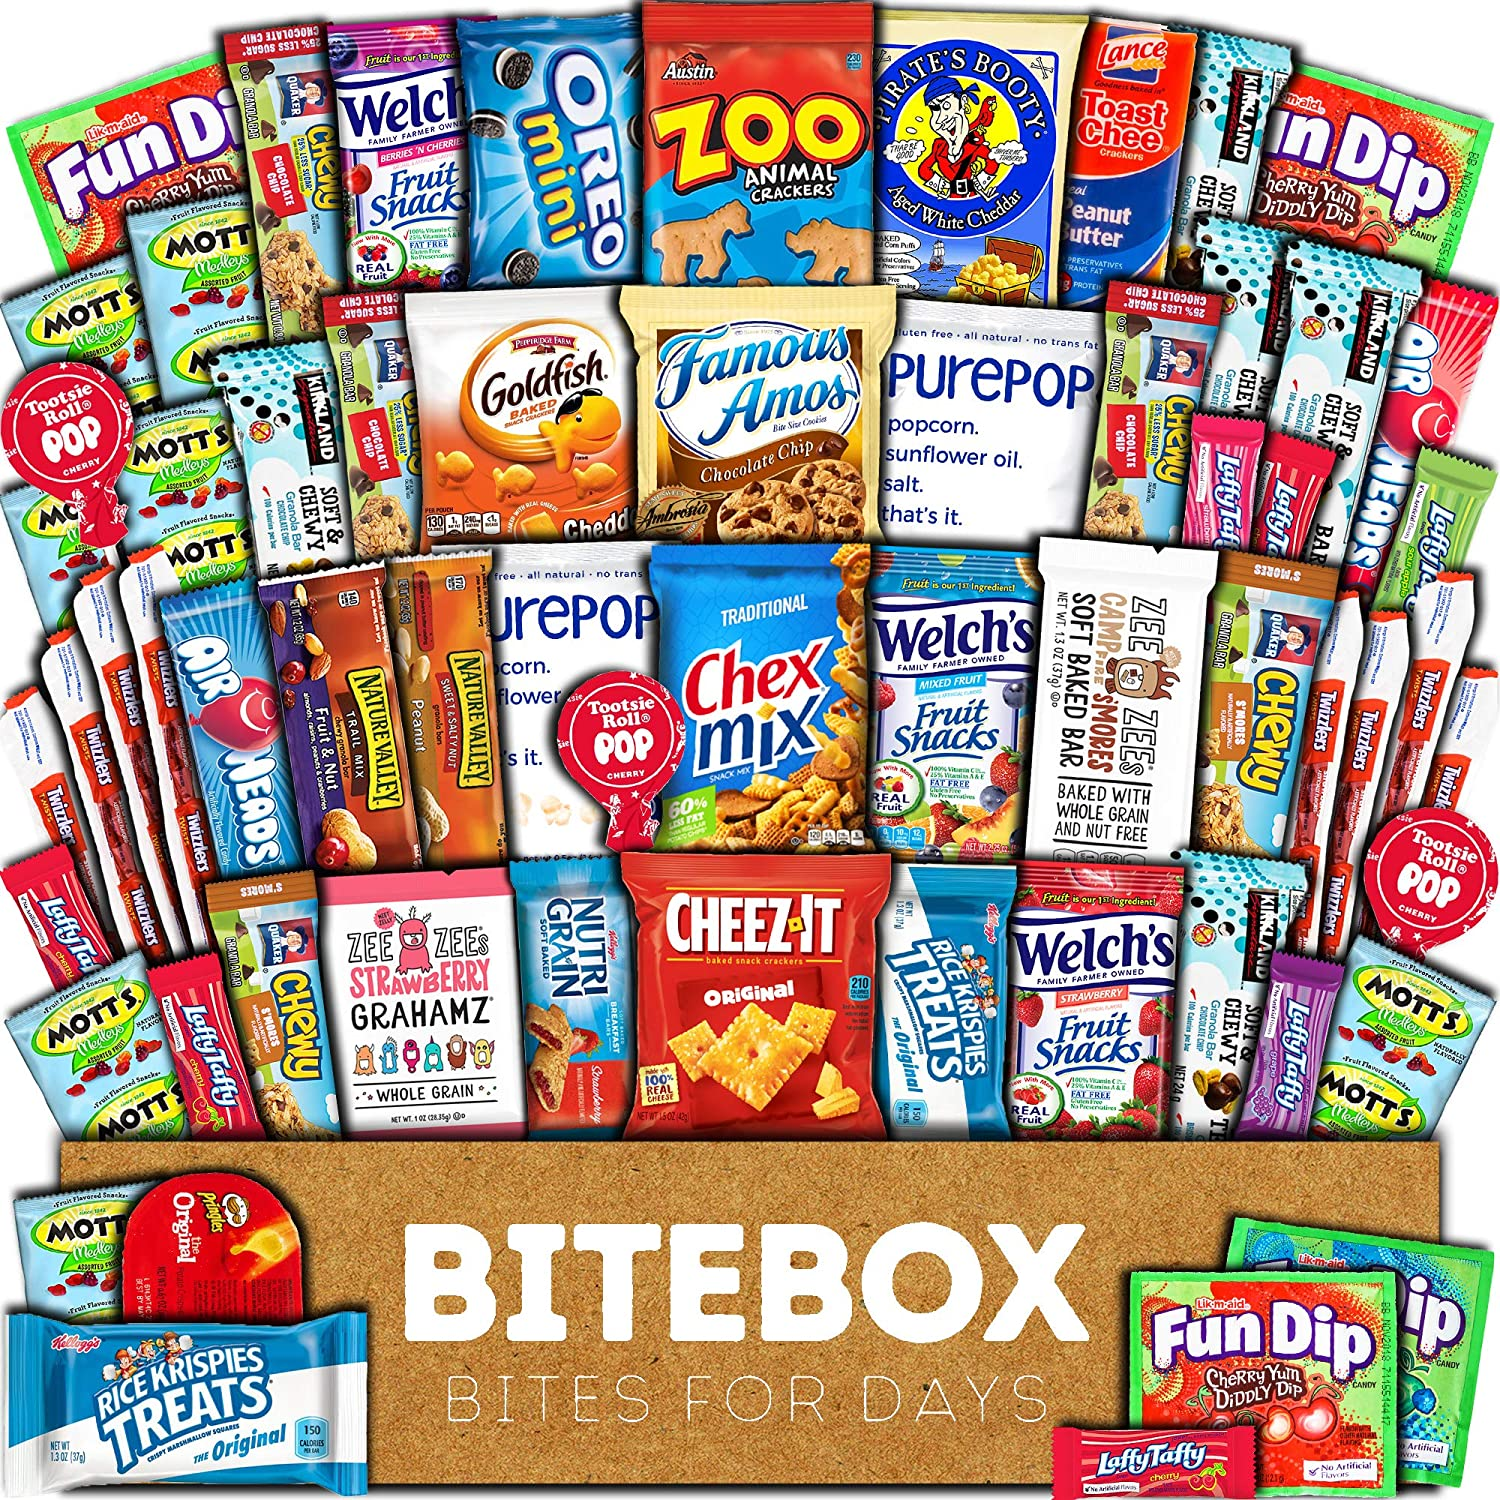 BiteBox Care Package (60 Count) Snacks Food Cookies Granola Bar Chips Candy Ultimate Variety Gift Box Pack Assortment Basket Bundle Mix Bulk Sampler Treats College Students Office Staff Back to School